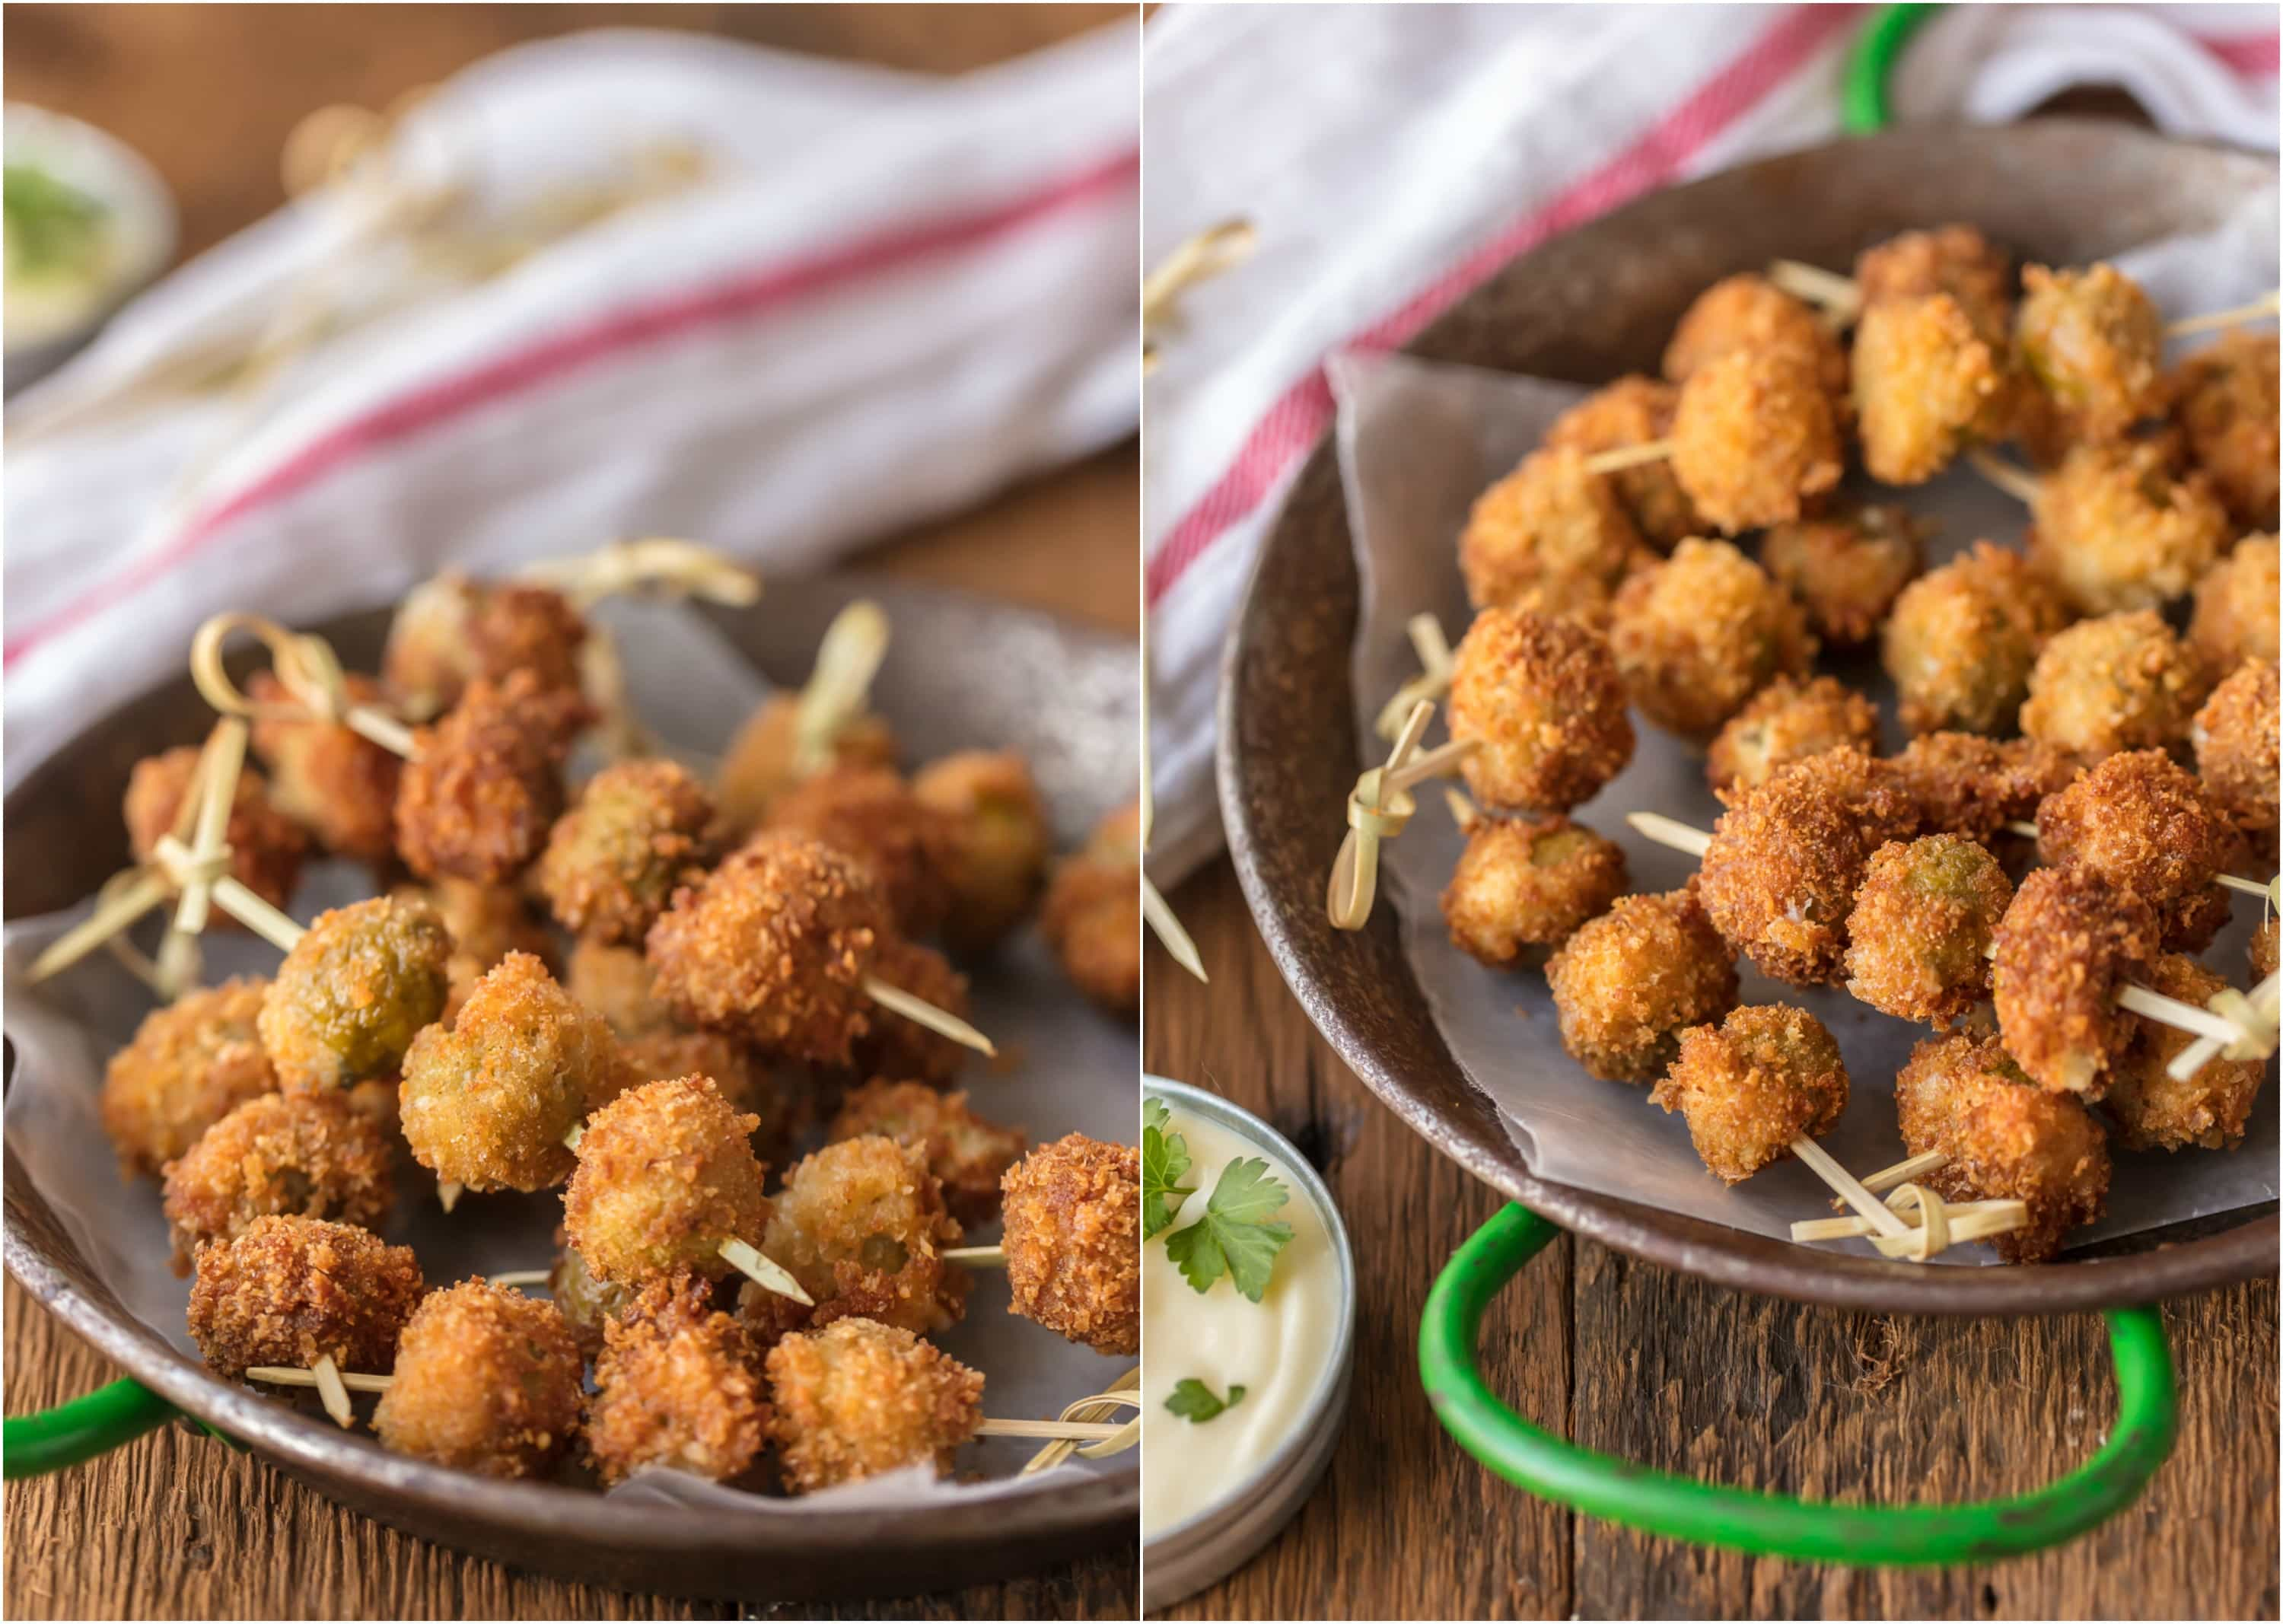 Fried Blue Cheese Stuffed Olives - The Cookie Rookie